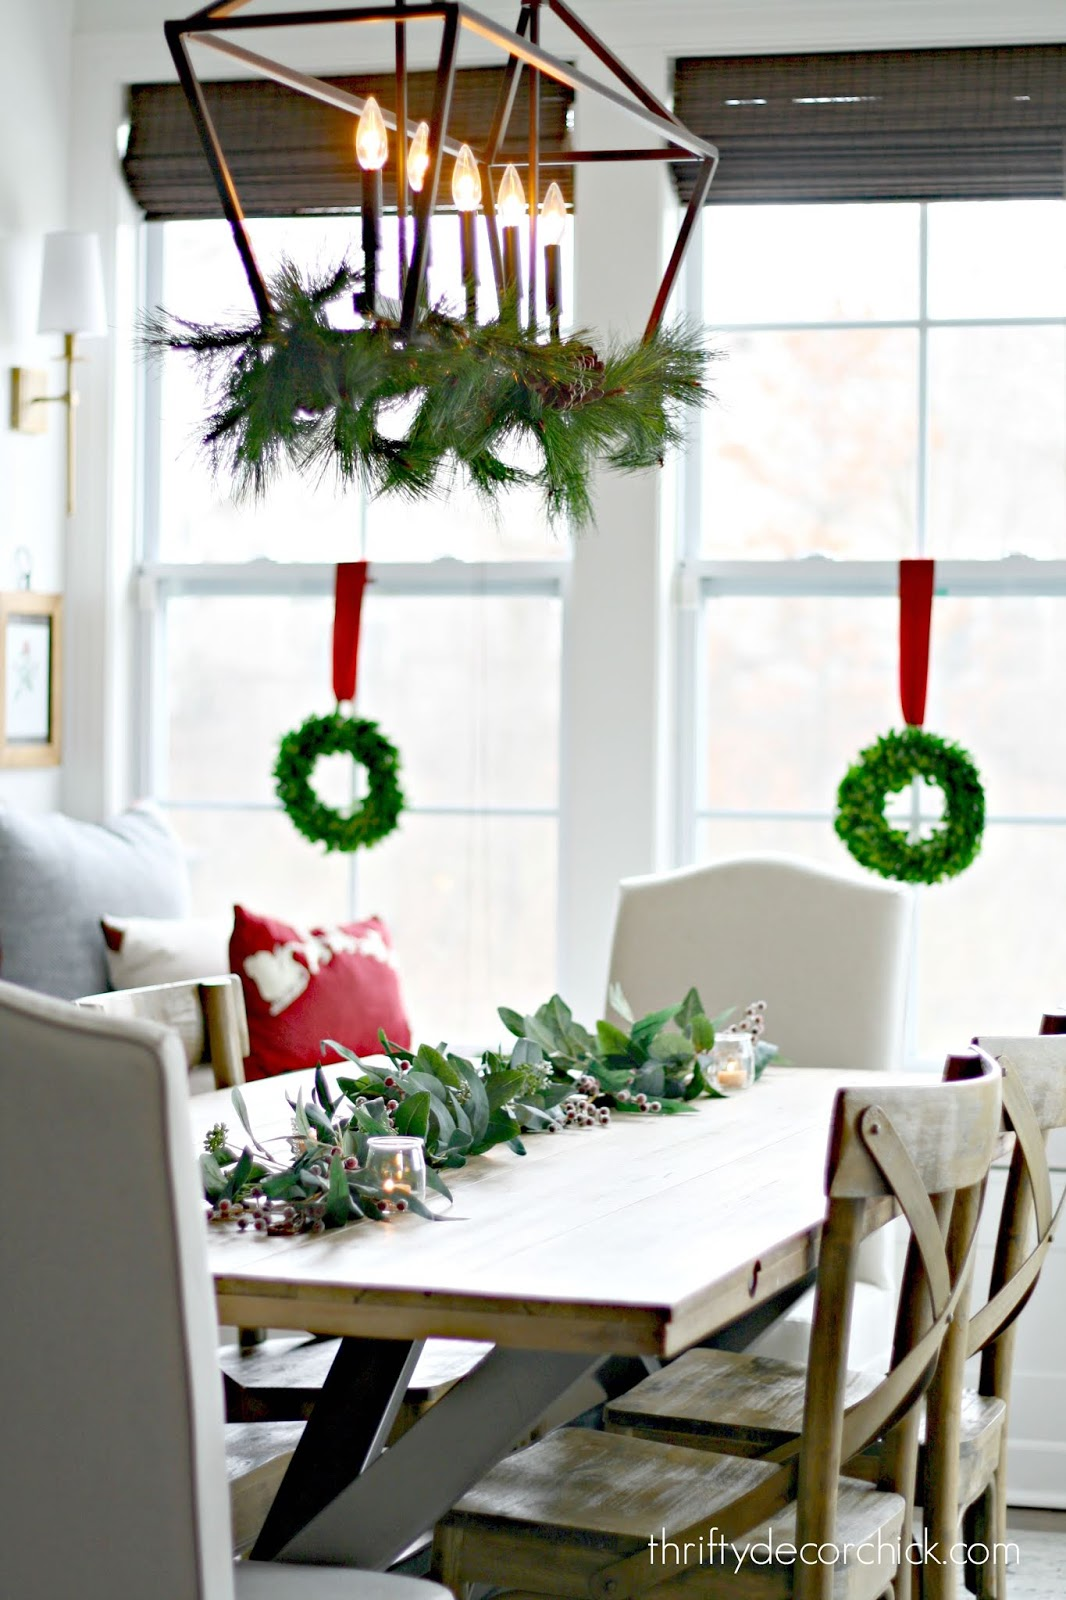 Simple Christmas centerpiece with eucalyptus garland